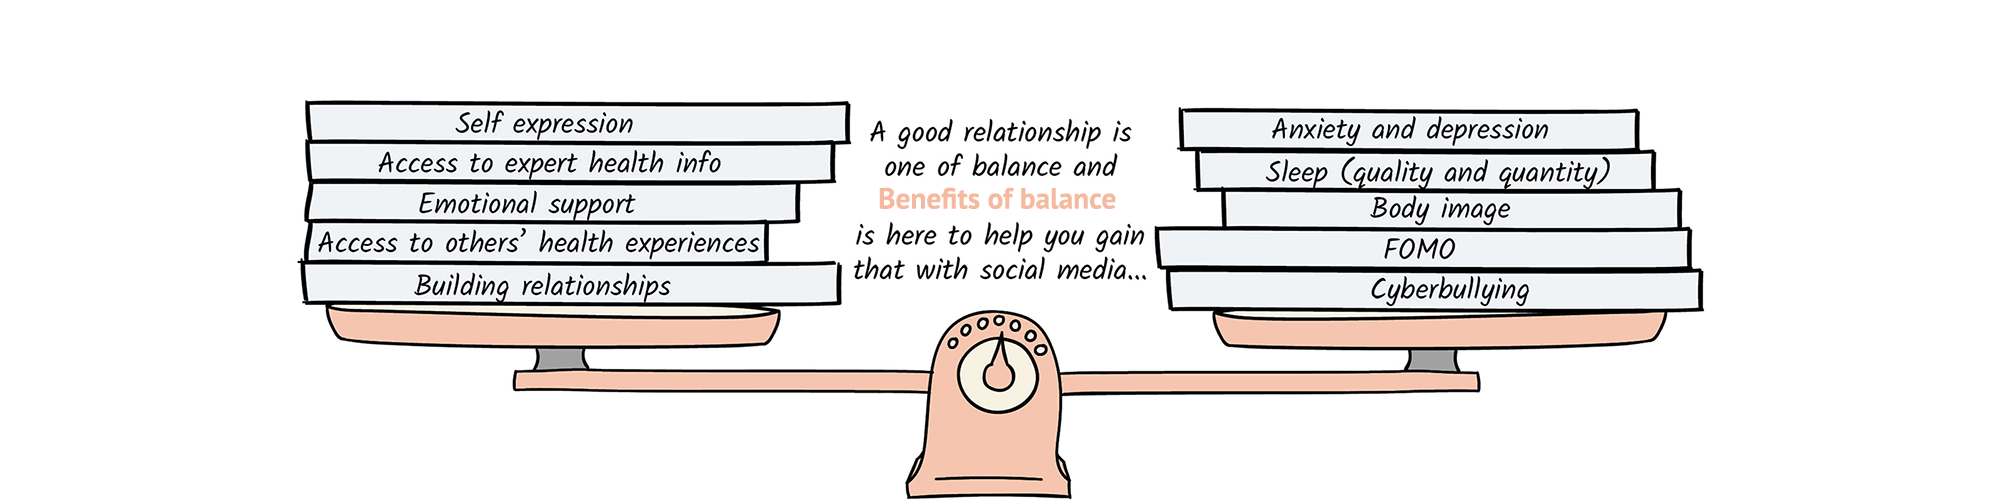 A graphic explaining the 'Benefits of Balance' on social media